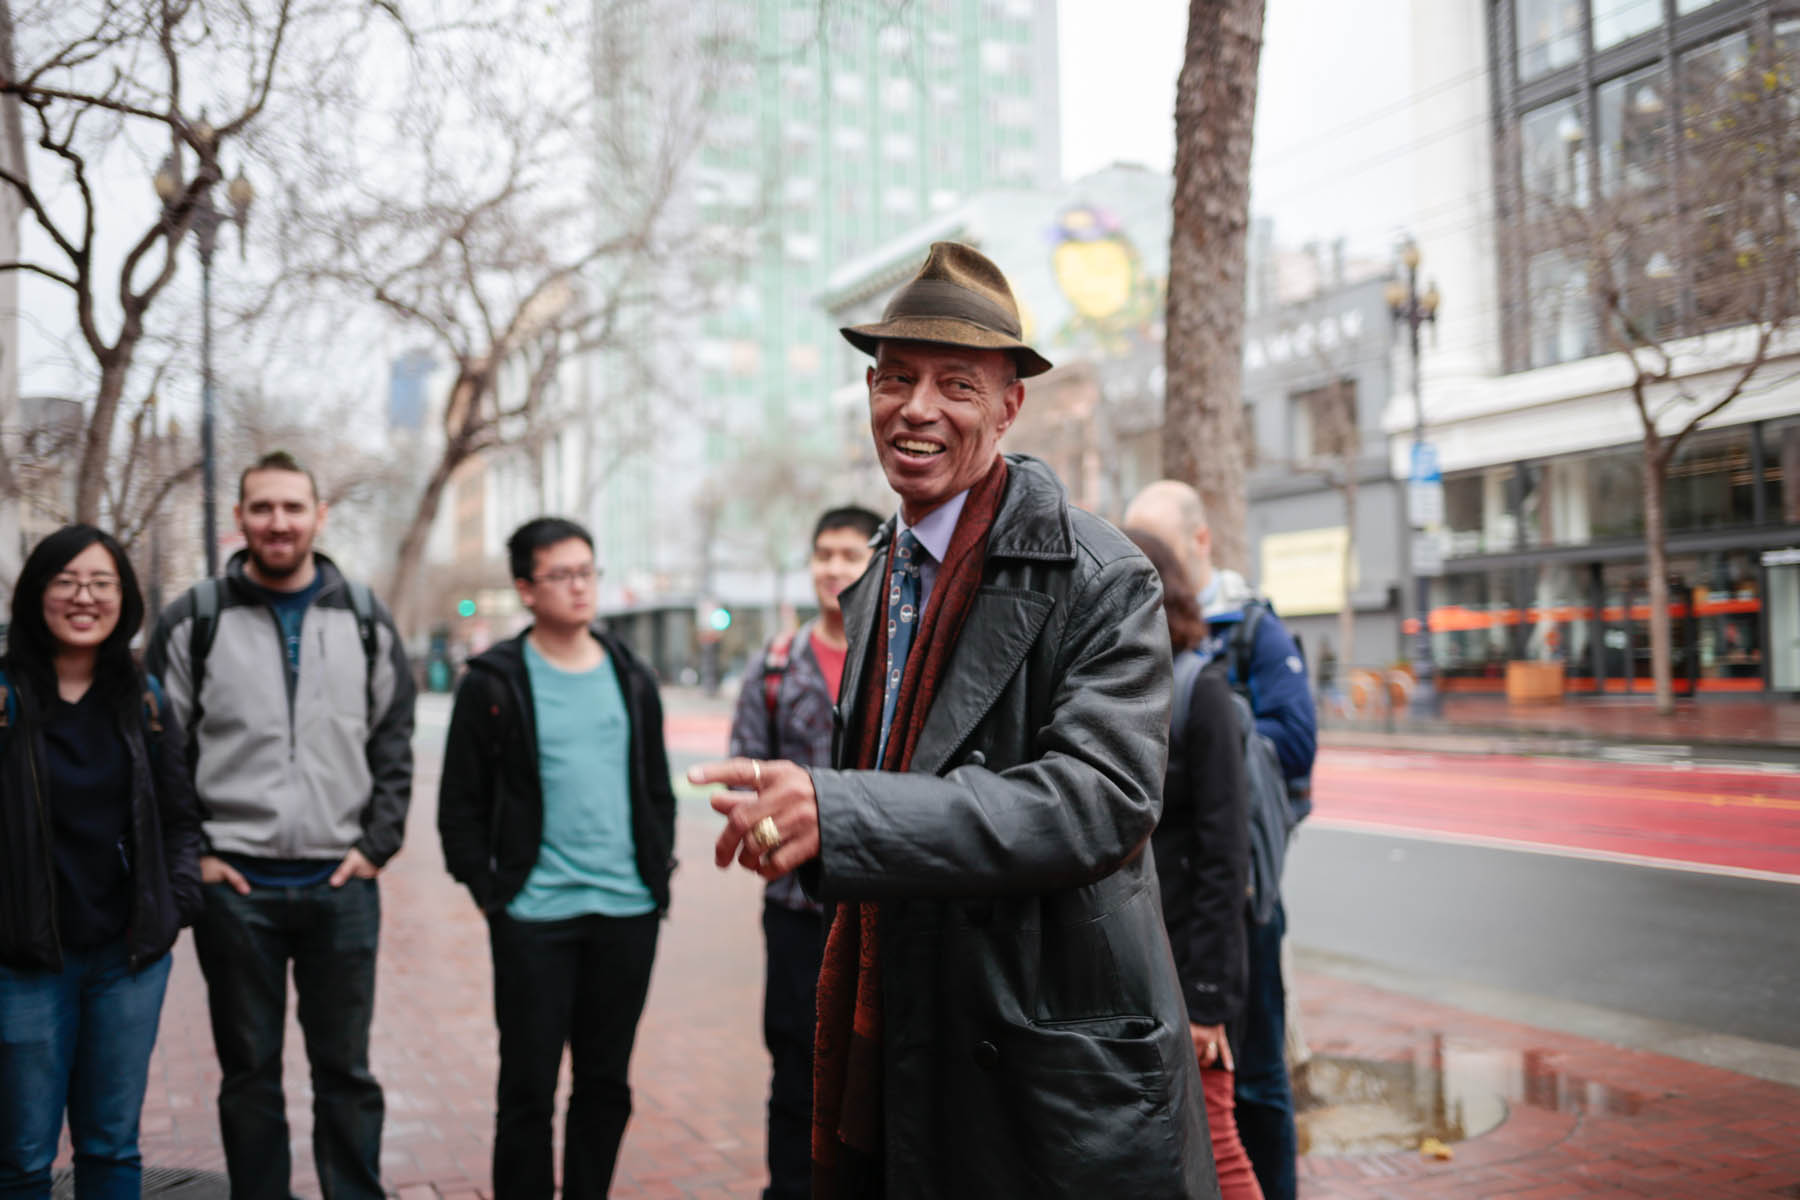 """A veteran and compassionate neighbor, Del Seymour has been a member of the Tenderloin community for the past 30 years. He is a leader in the neighborhood, working closely with Glide Memorial Church, St. Antony's, and Swords to Plowshares. He is also co-chair of San Francisco's Local Homeless Coordinating Board and has an appointed position with the St.Francis TL HIP Board. This whole endeavor began eight years ago when Del founded Tenderloin Walking Tours in order to """"present the Tenderloin in a favorable setting."""" In 2015, he founded Code Tenderloin to address the economic inequality he saw in his beloved neighborhood."""